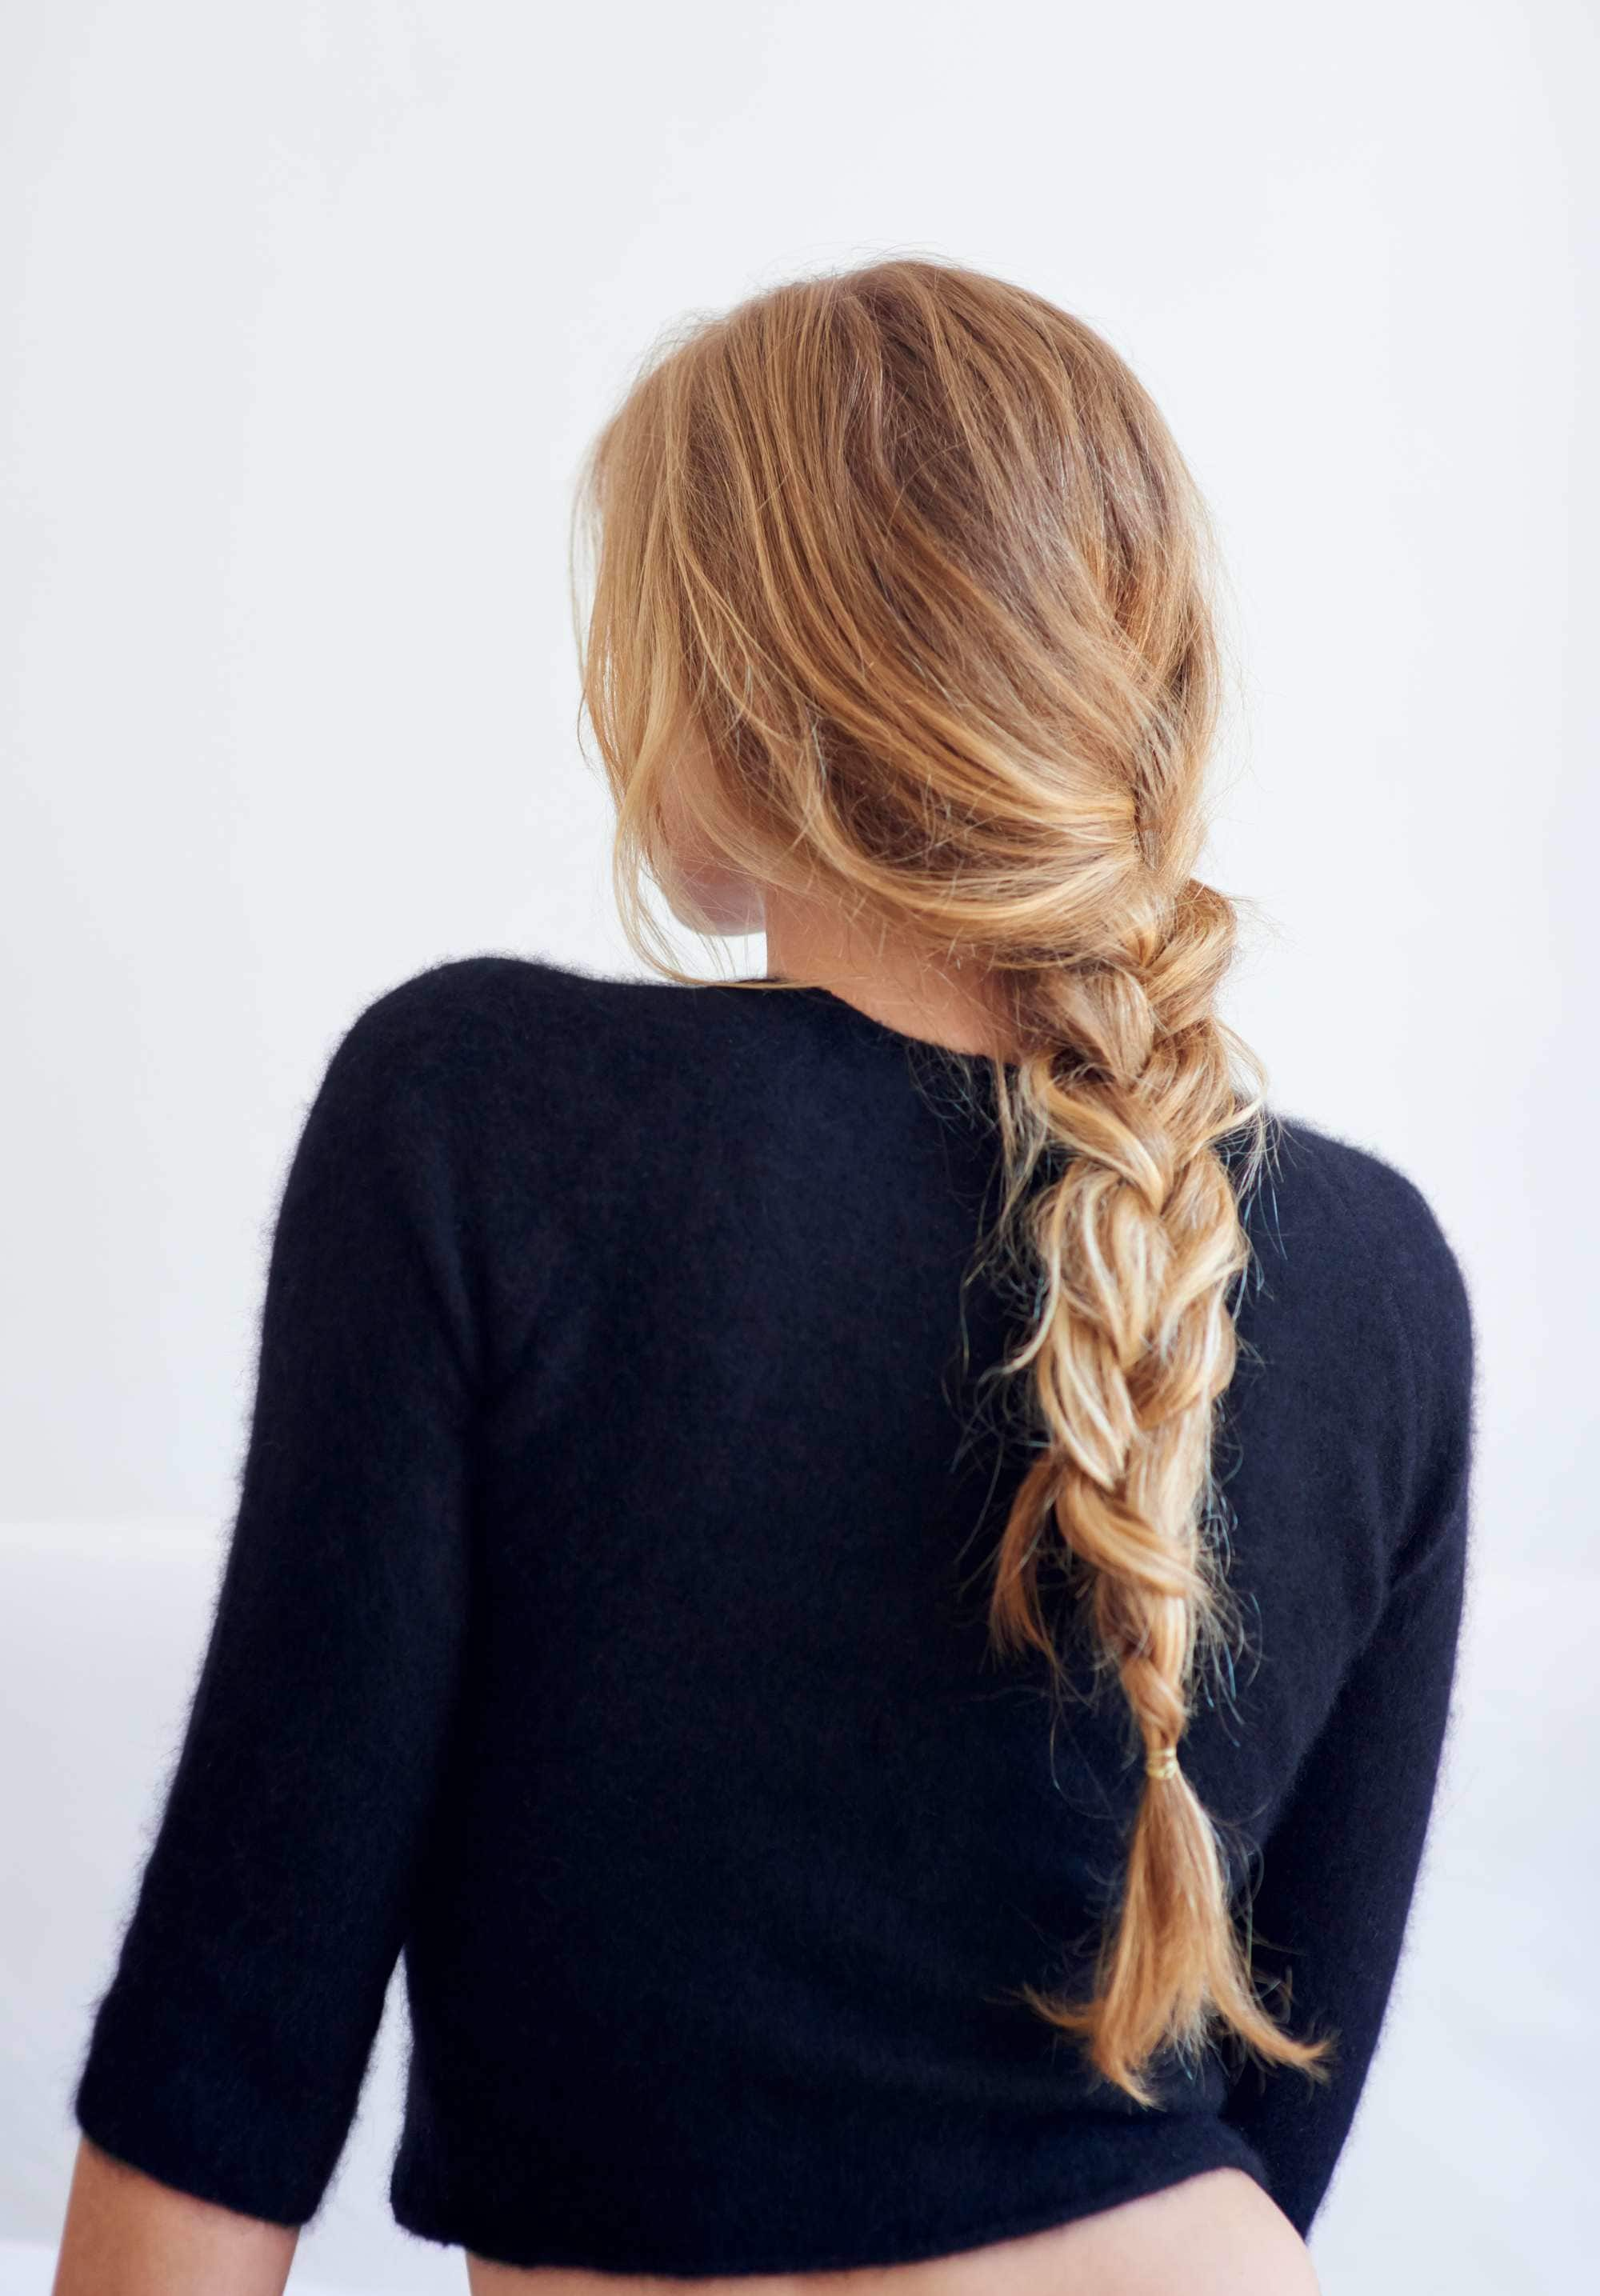 professional hairstyles for long hair 3-section braid